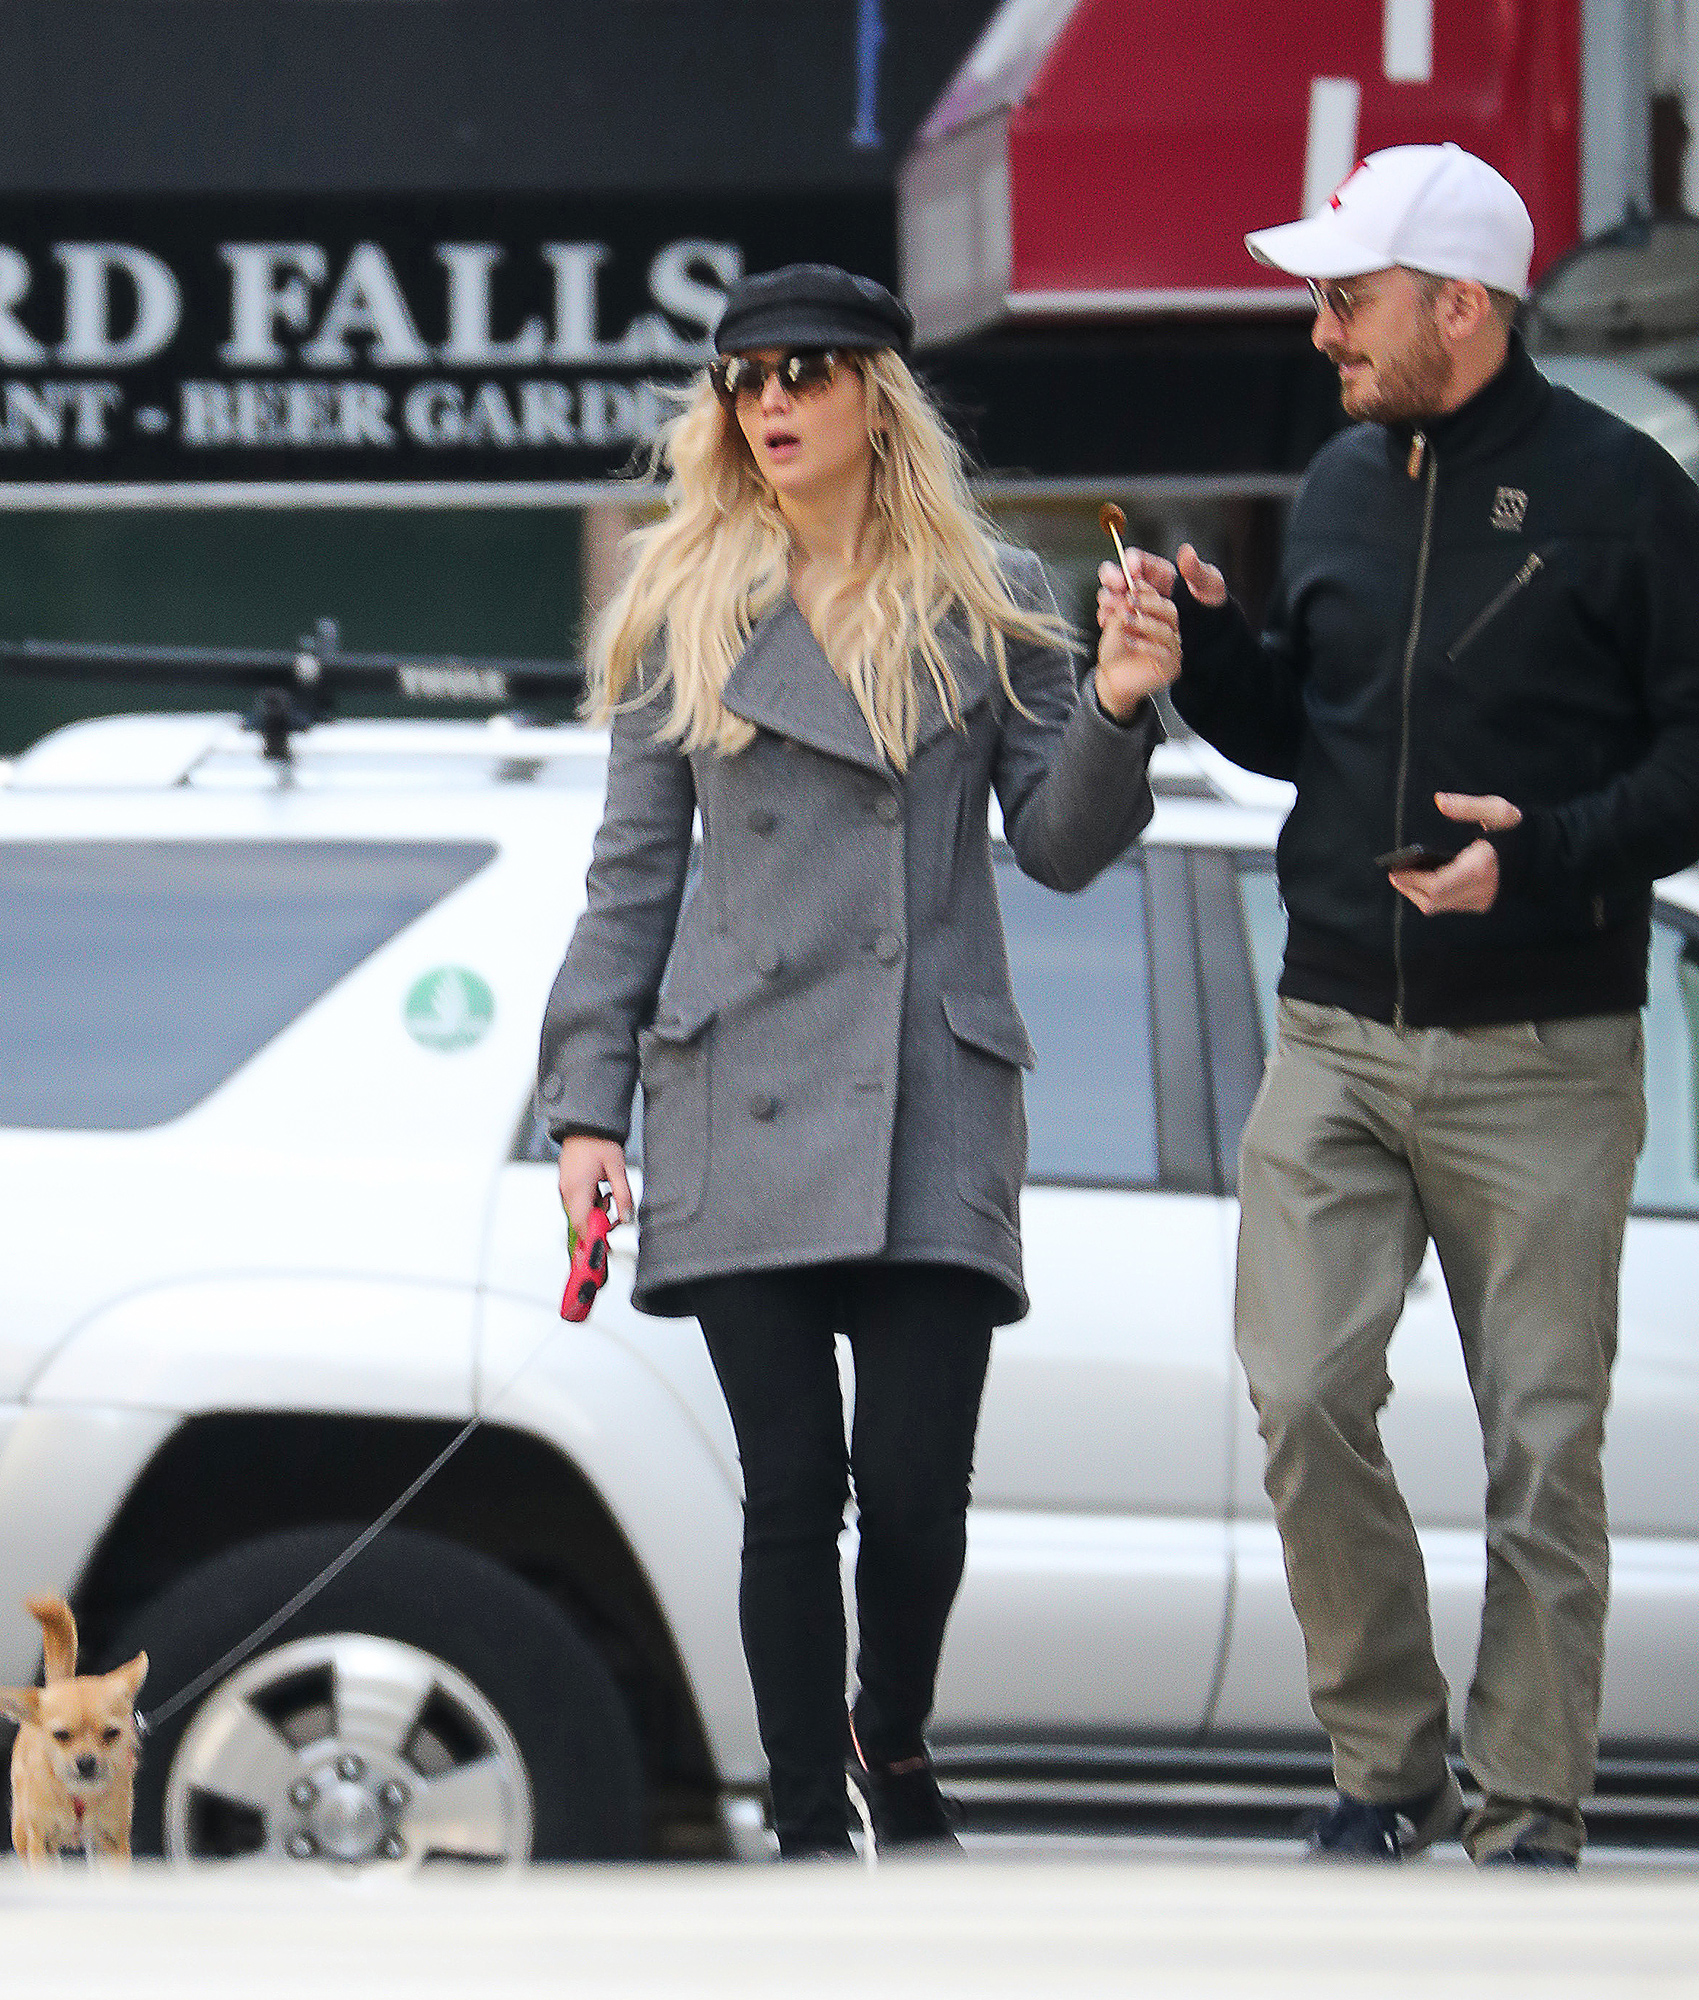 PREMIUM EXCLUSIVE: Jennifer Lawrence is spotted sharing a lollipop on a romantic walk with rumored love interest Darren Aronfsky in New York City.